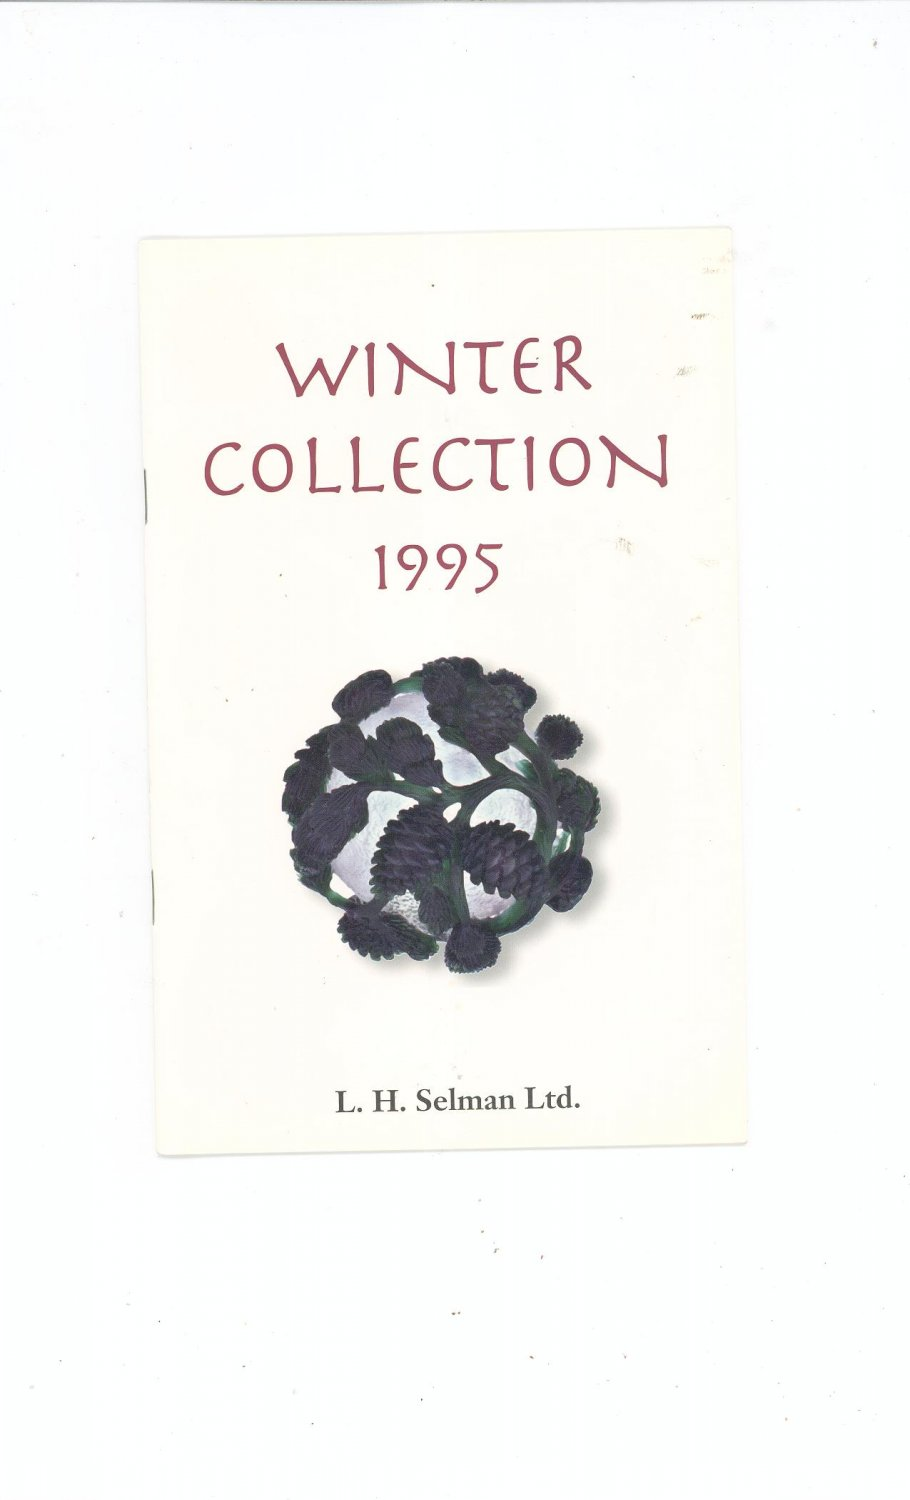 Winter Collection 1995 Catalog / Brochure by L. H. Selman Ltd. Paperweights